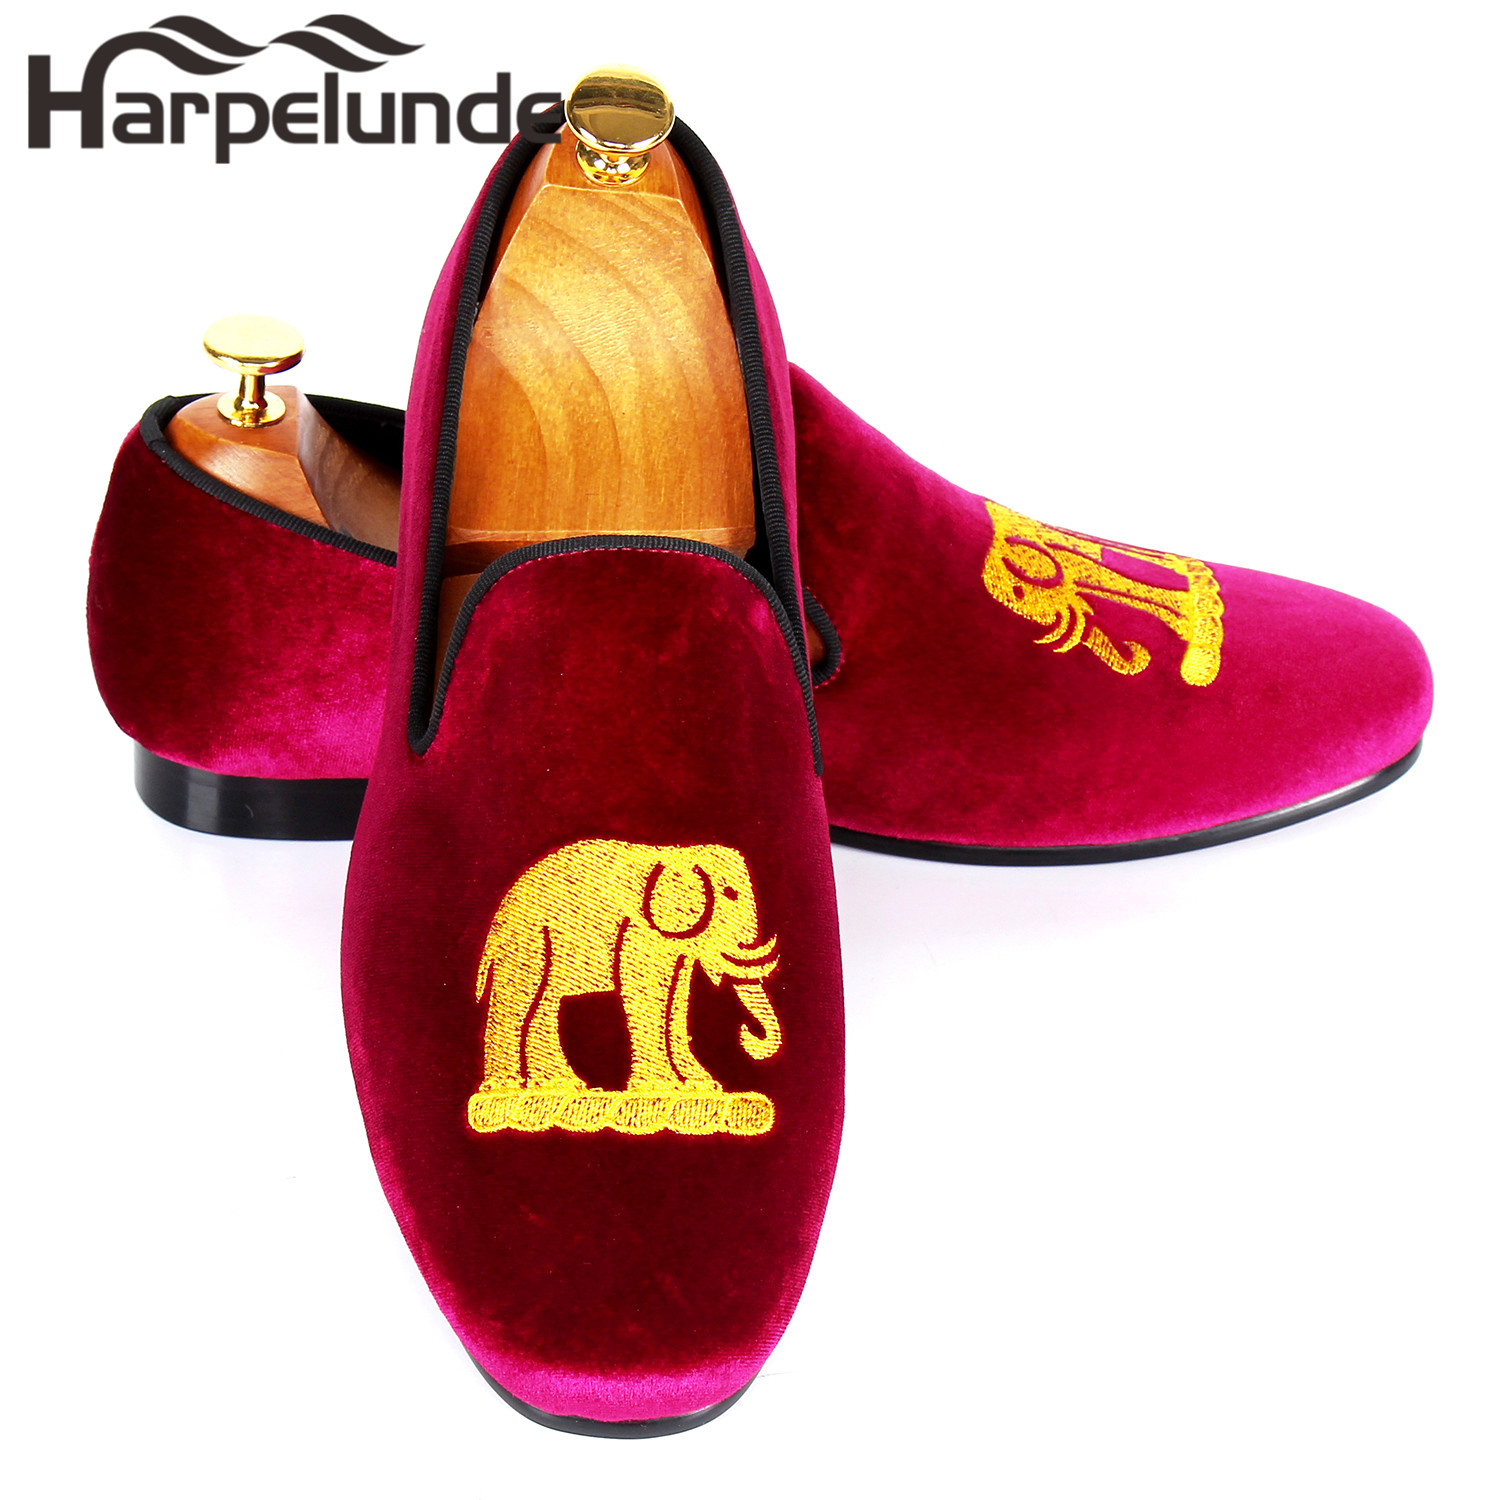 32164b7f48f32 Harpelunde Velvet Loafers Mens Flats Emrbroidery Casual Shoes Custom Smoking  Slippers Size 7-12